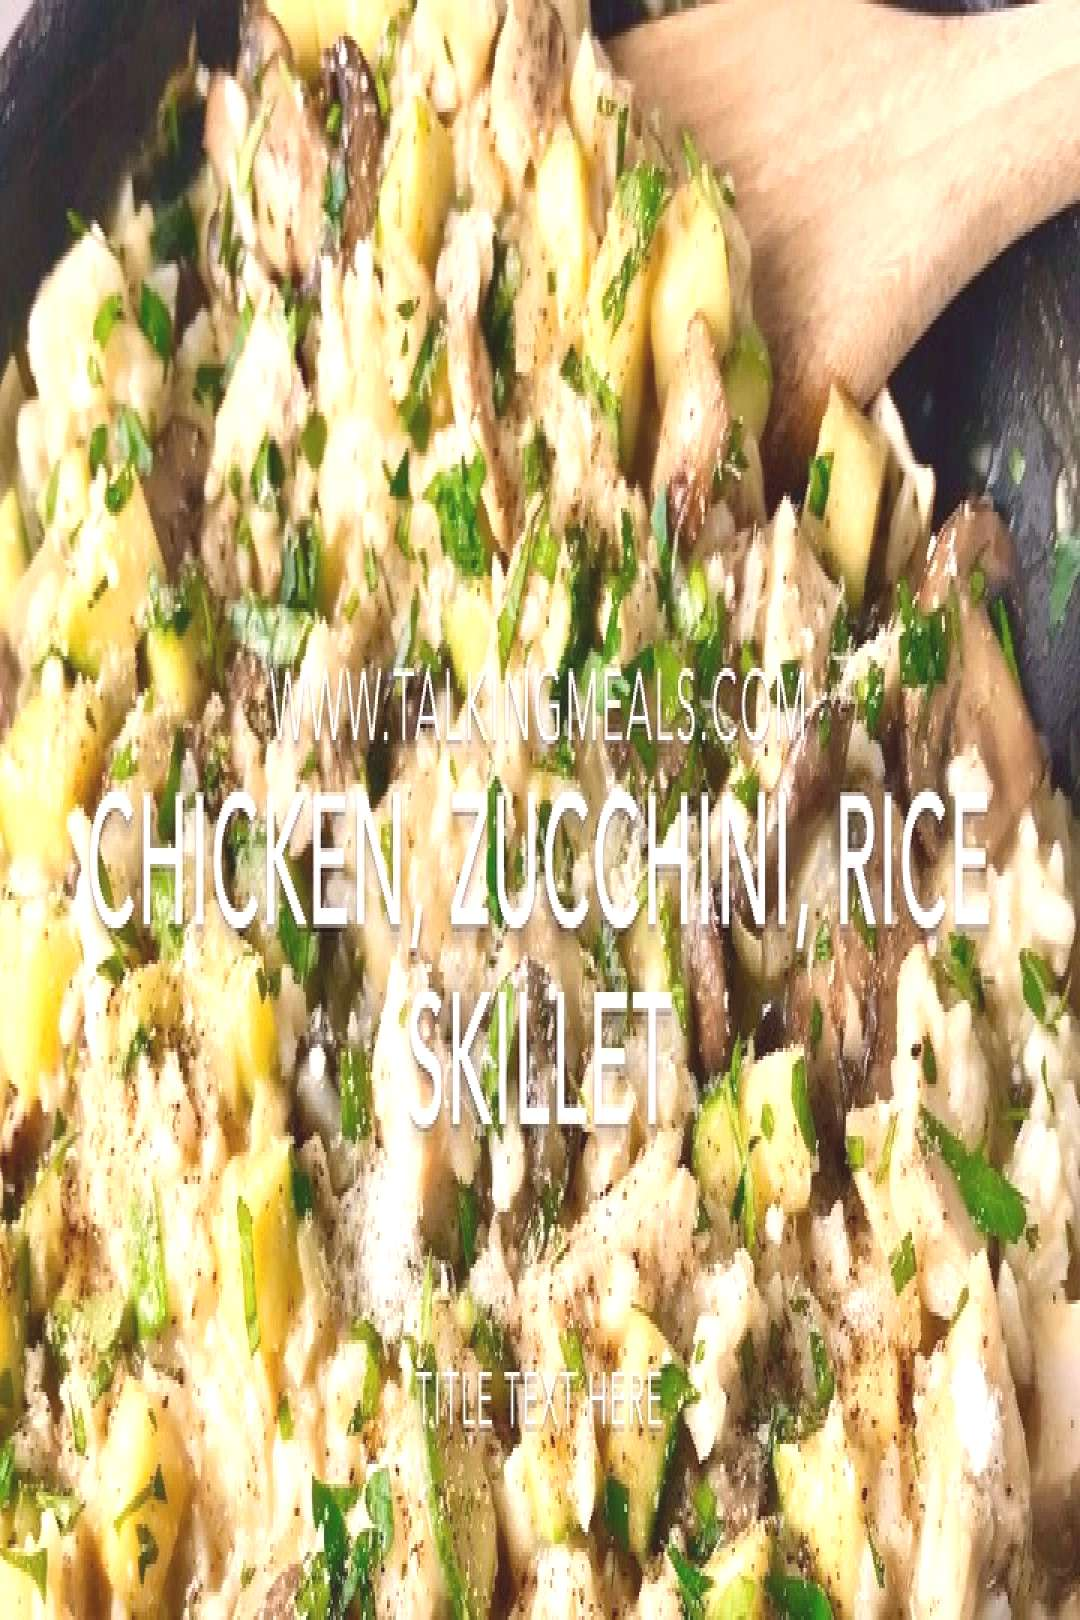 Need an EASY amp YUMMY dinner? Zucchini and Chicken Rice Skillet it